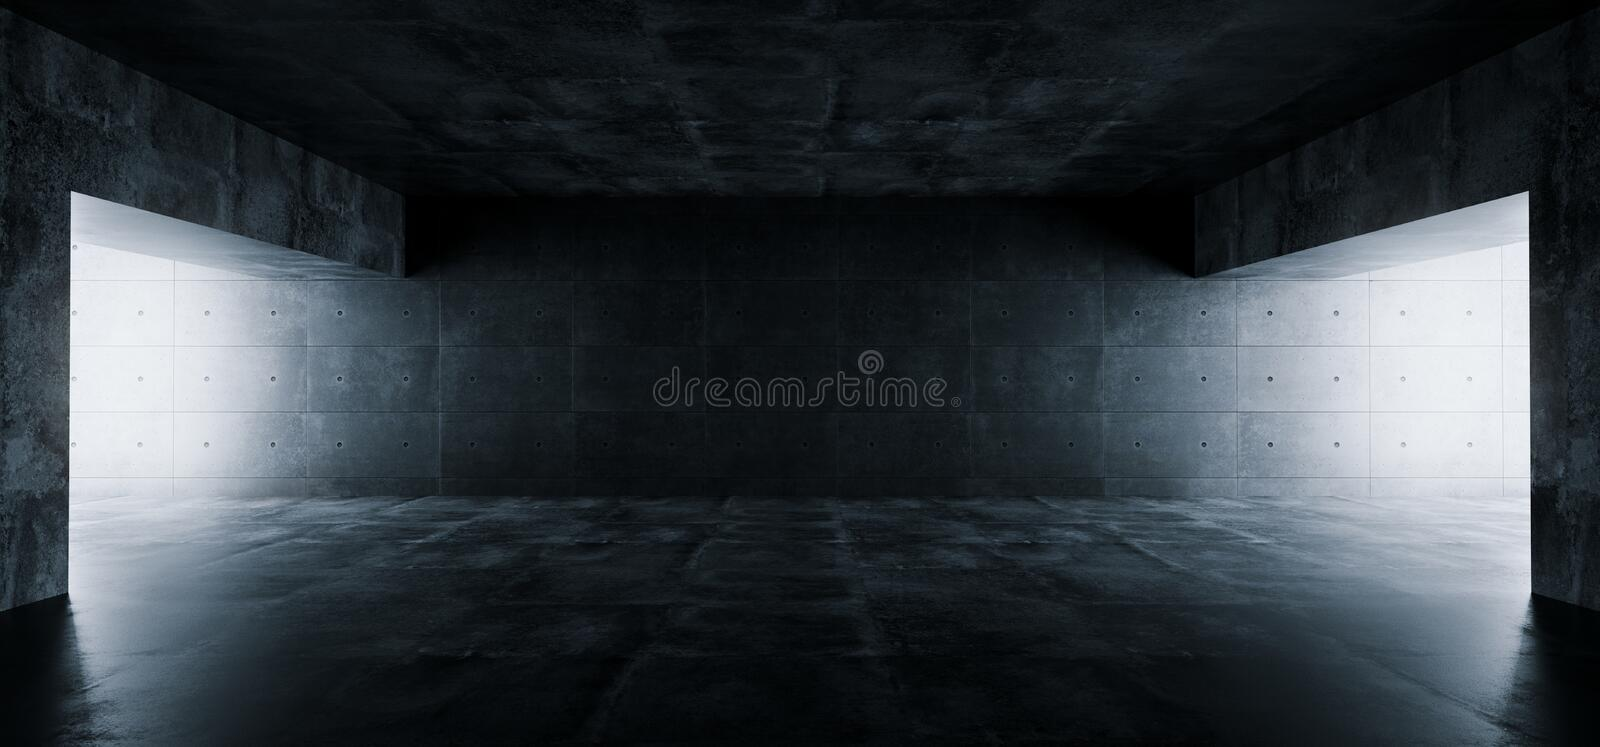 Empty Elegant Modern Grunge Dark Refletcions Concrete Underground Tunnel Room With Bright White Lights Background Wallpaper 3D Re. Empty Elegant Modern Grunge vector illustration